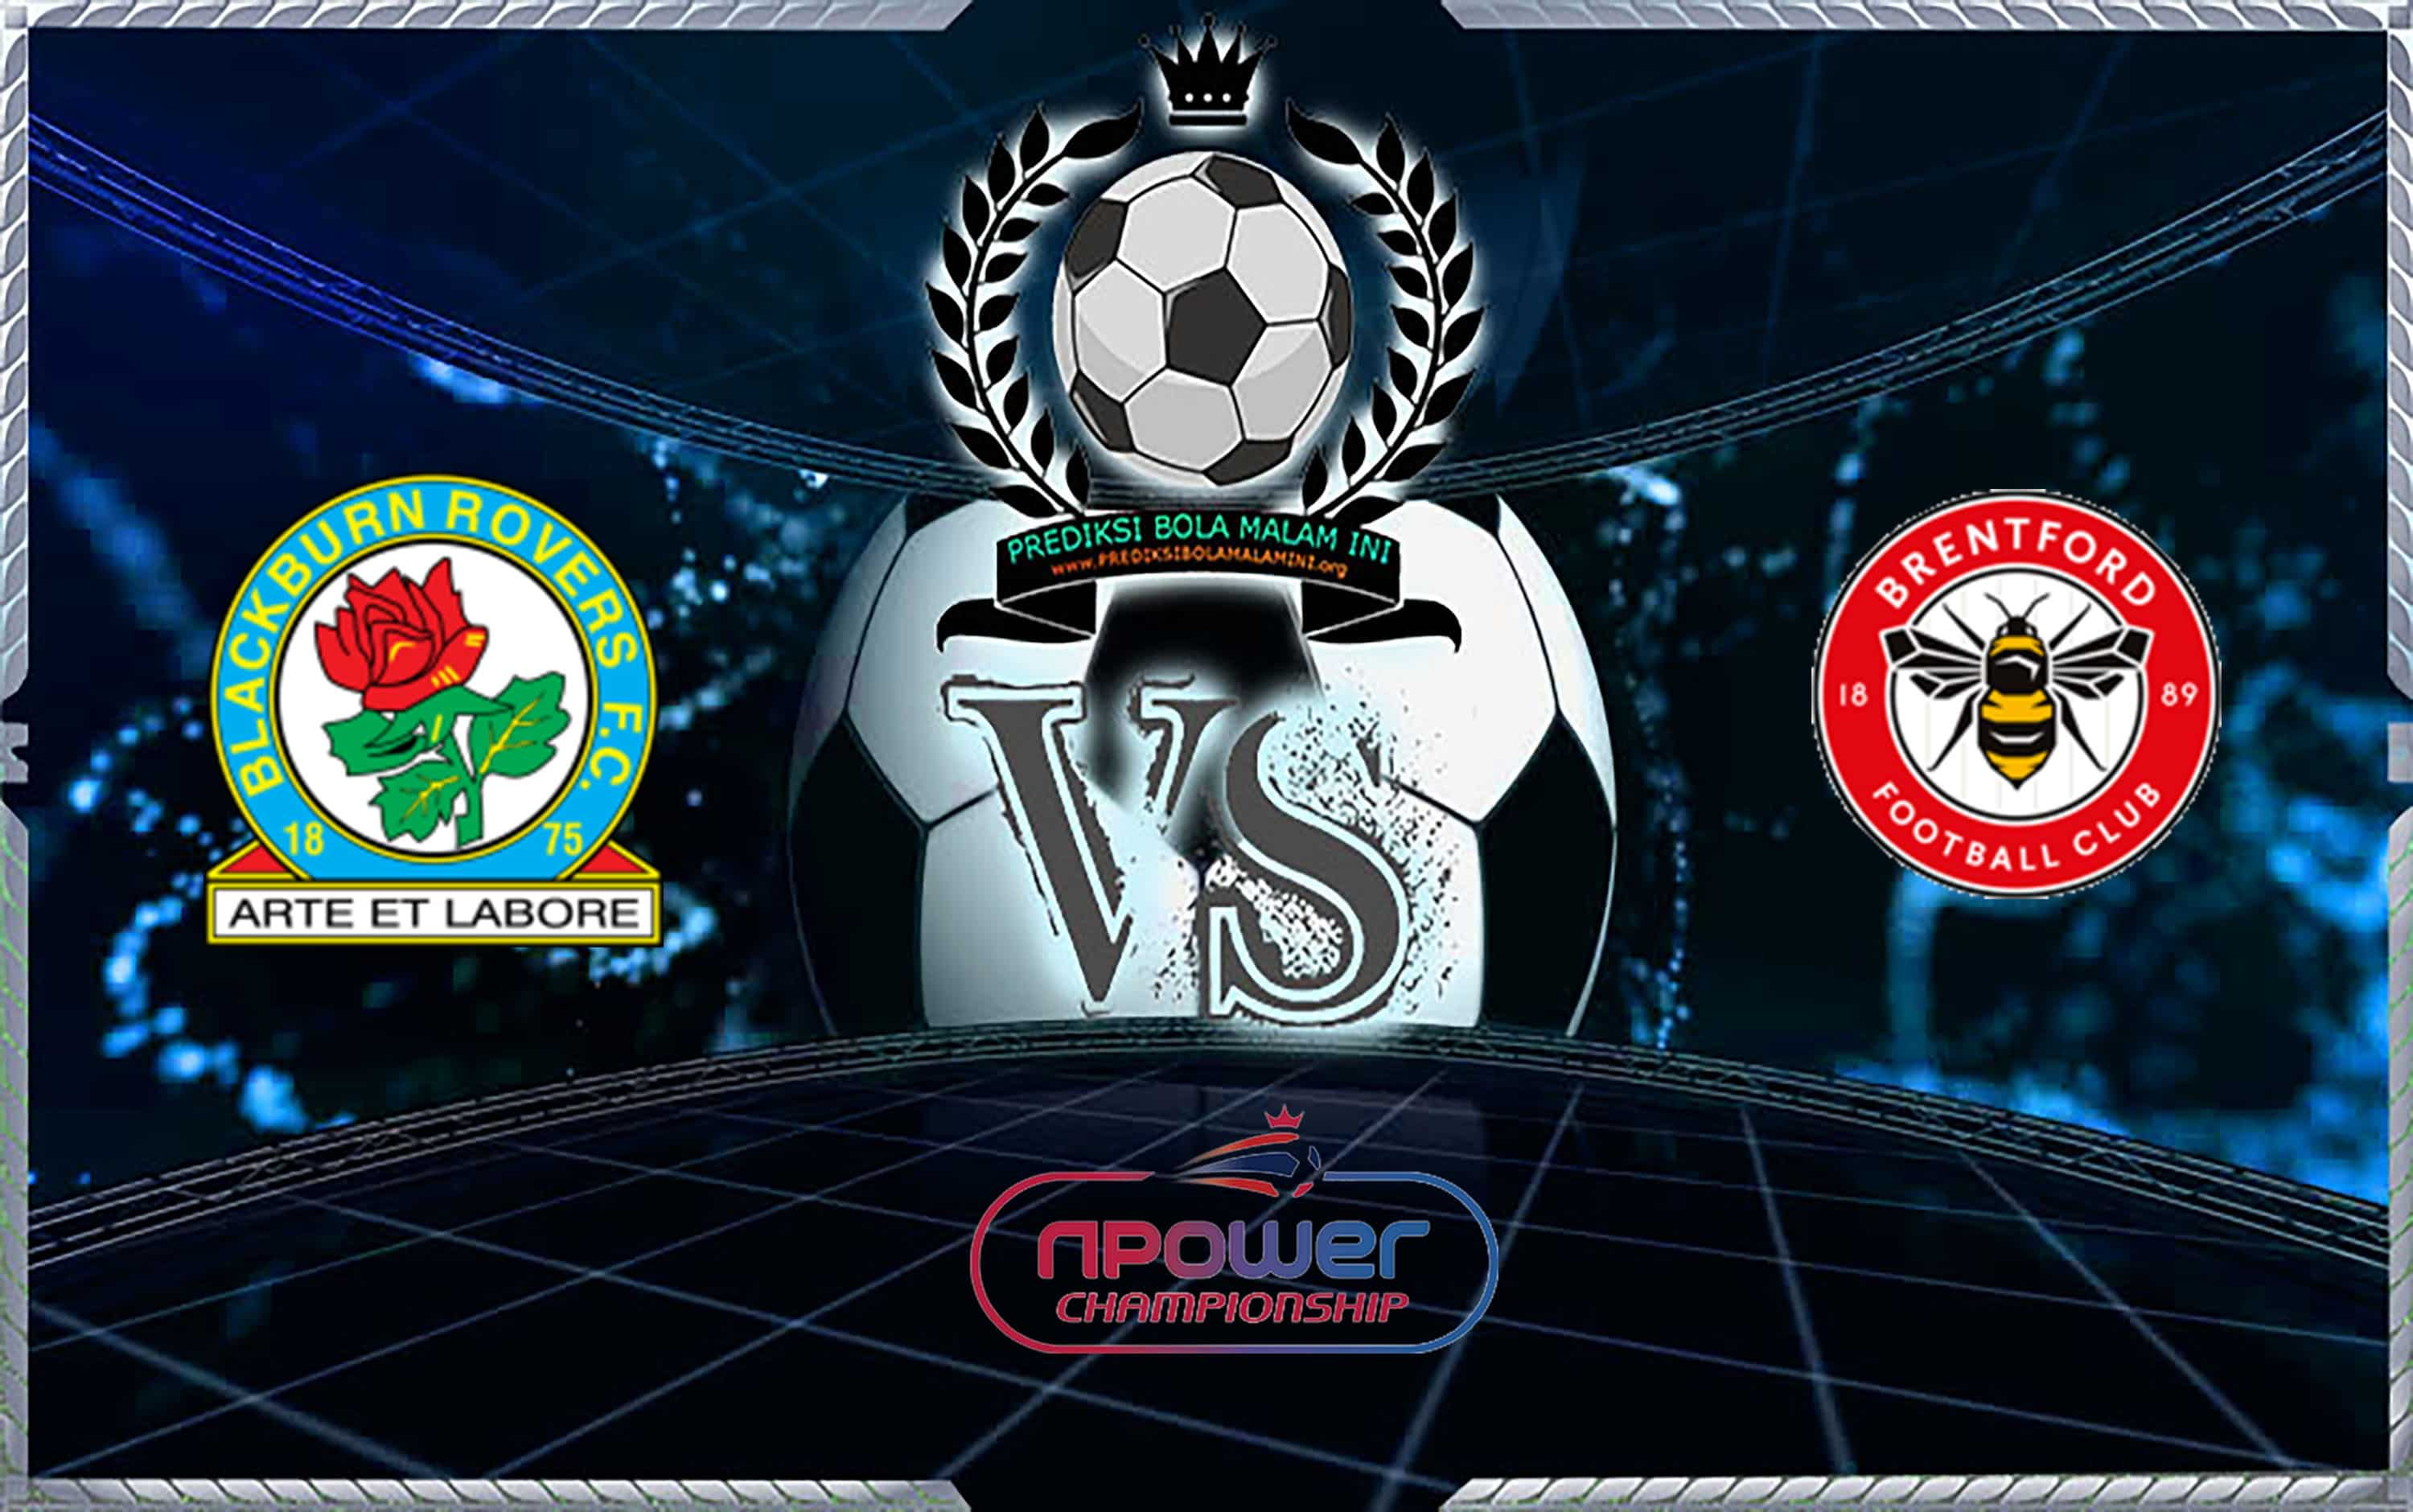 Prediksi Skor Blackburn Rovers Vs Brentford FC 28 November 2019